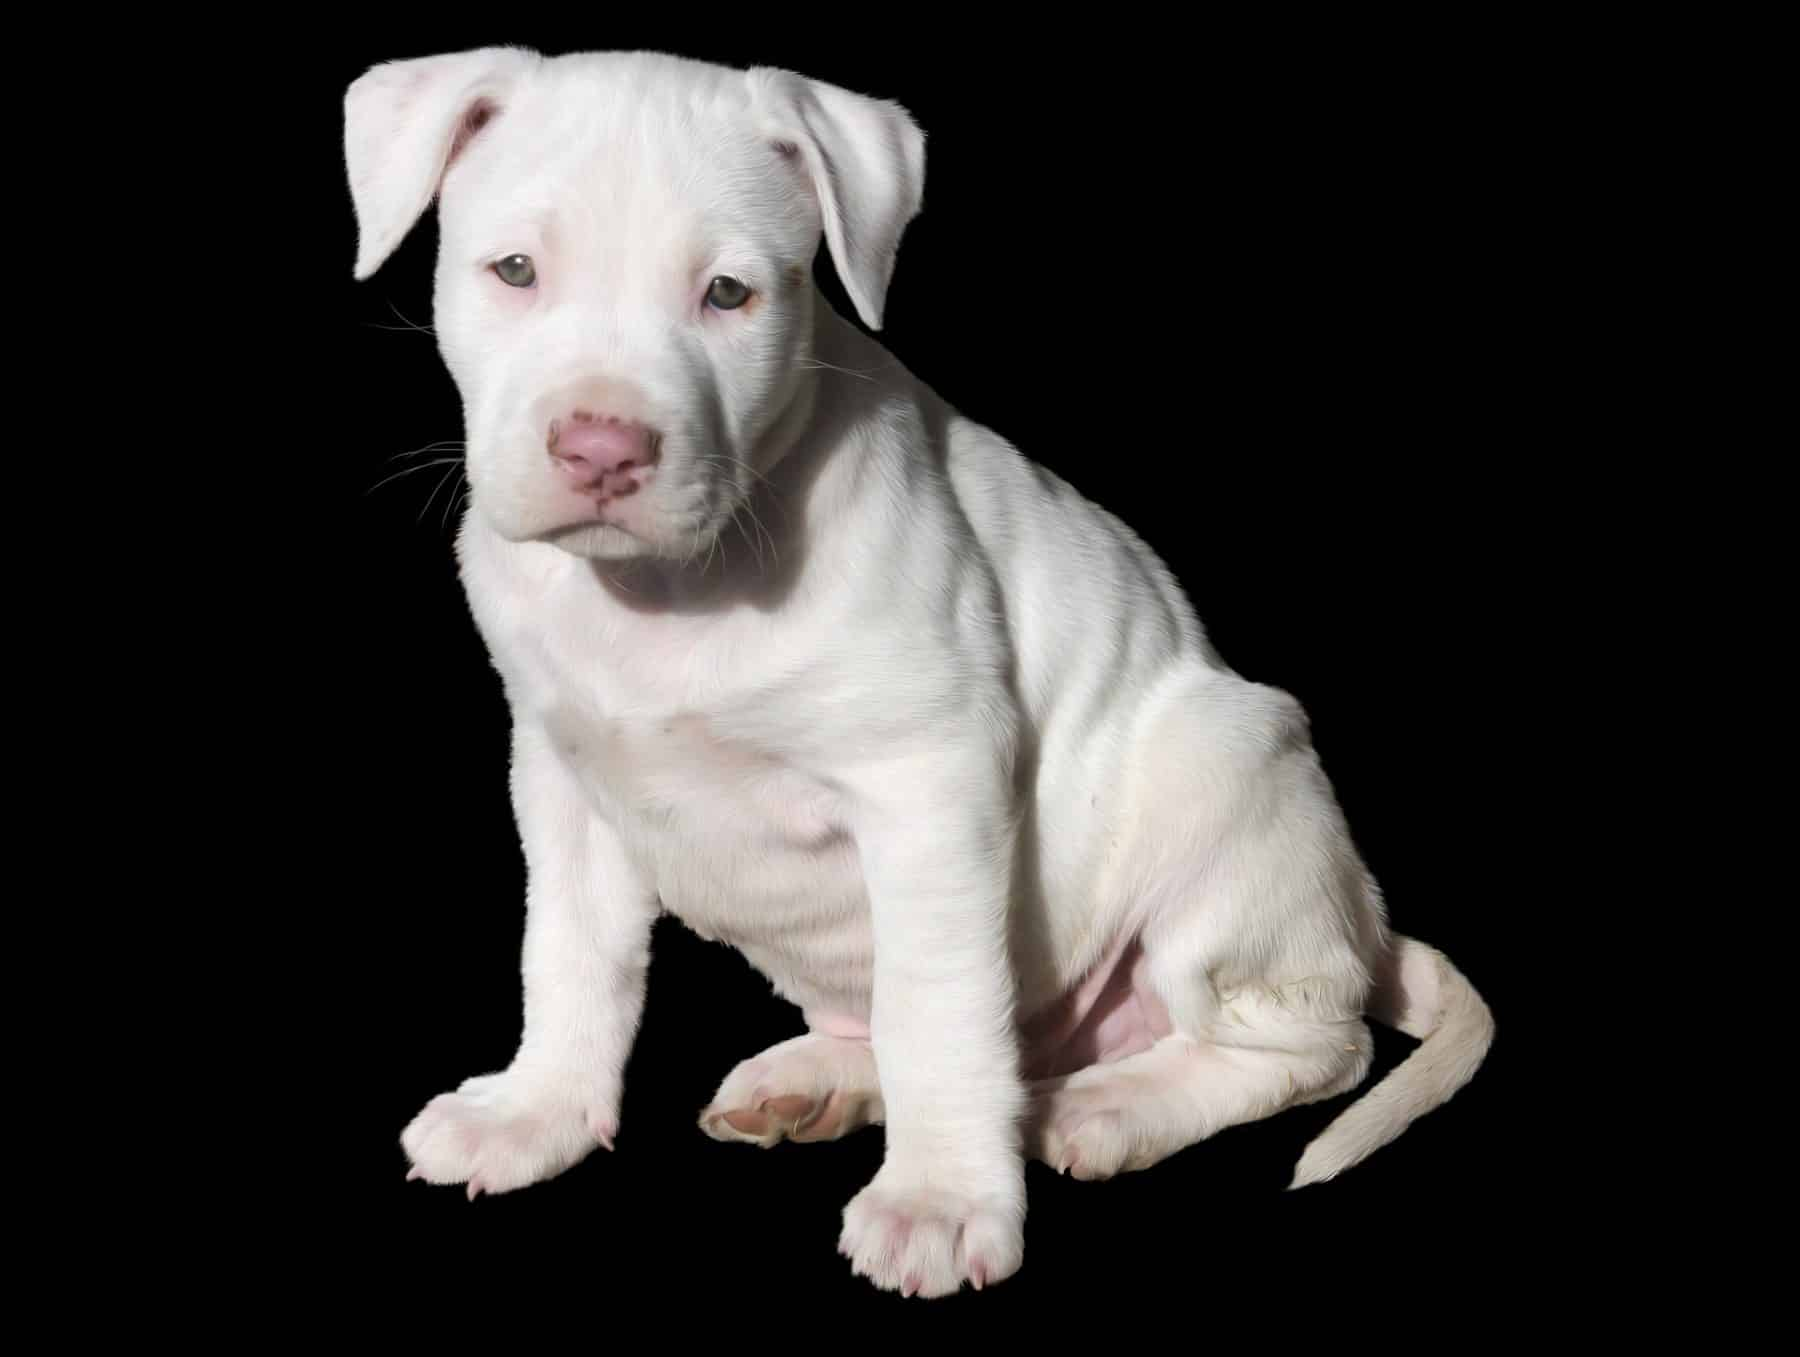 Pit Bull Puppies Everything You Need To Know The Dog People By